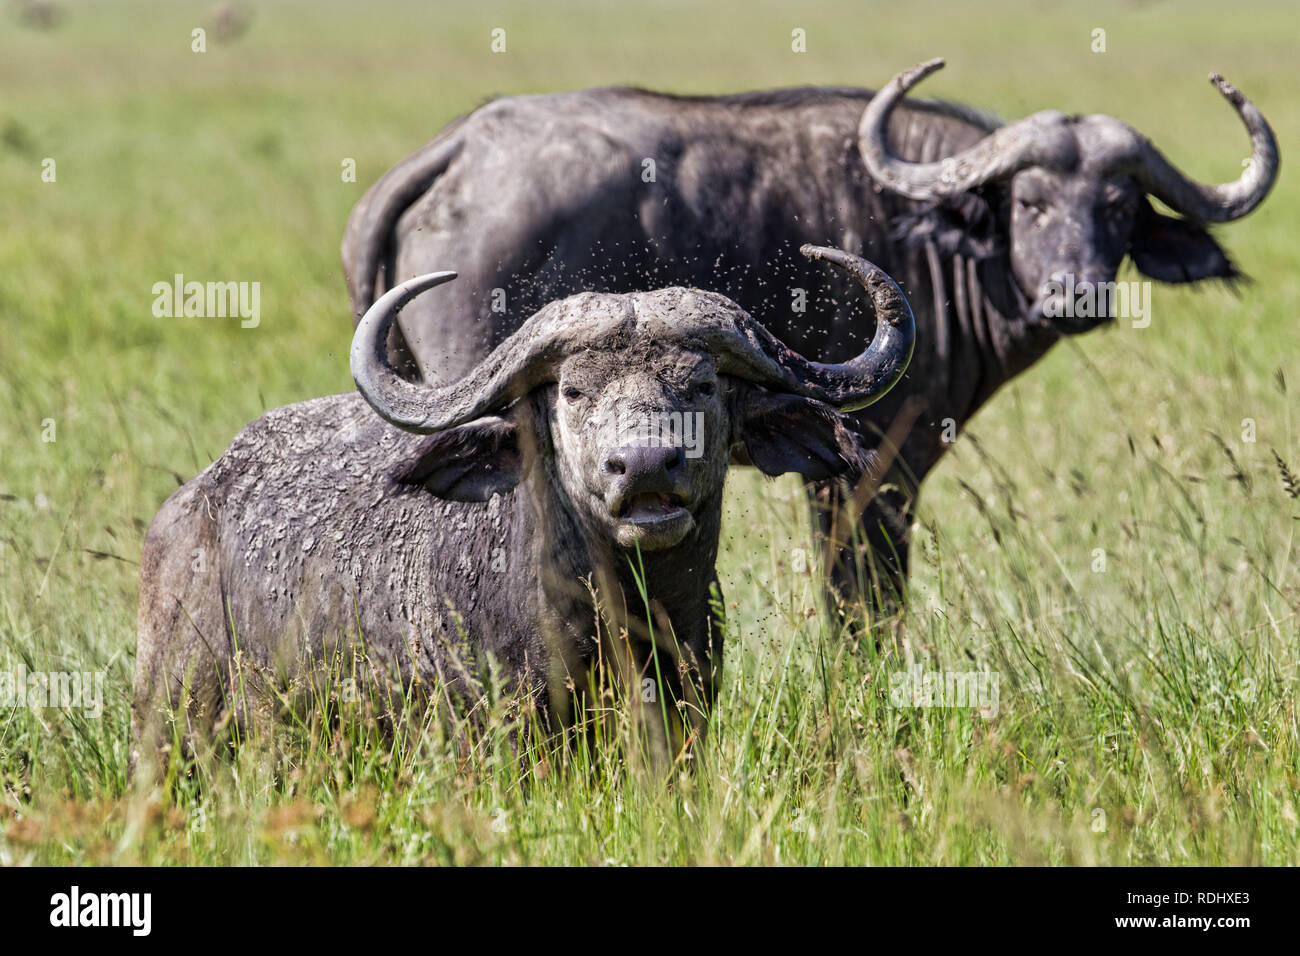 African Cape buffalo, Syncerus caffer, mostly occur in the northern stretches of Akagera National Park, Parc National de l'Akagera, Rwanda. - Stock Image